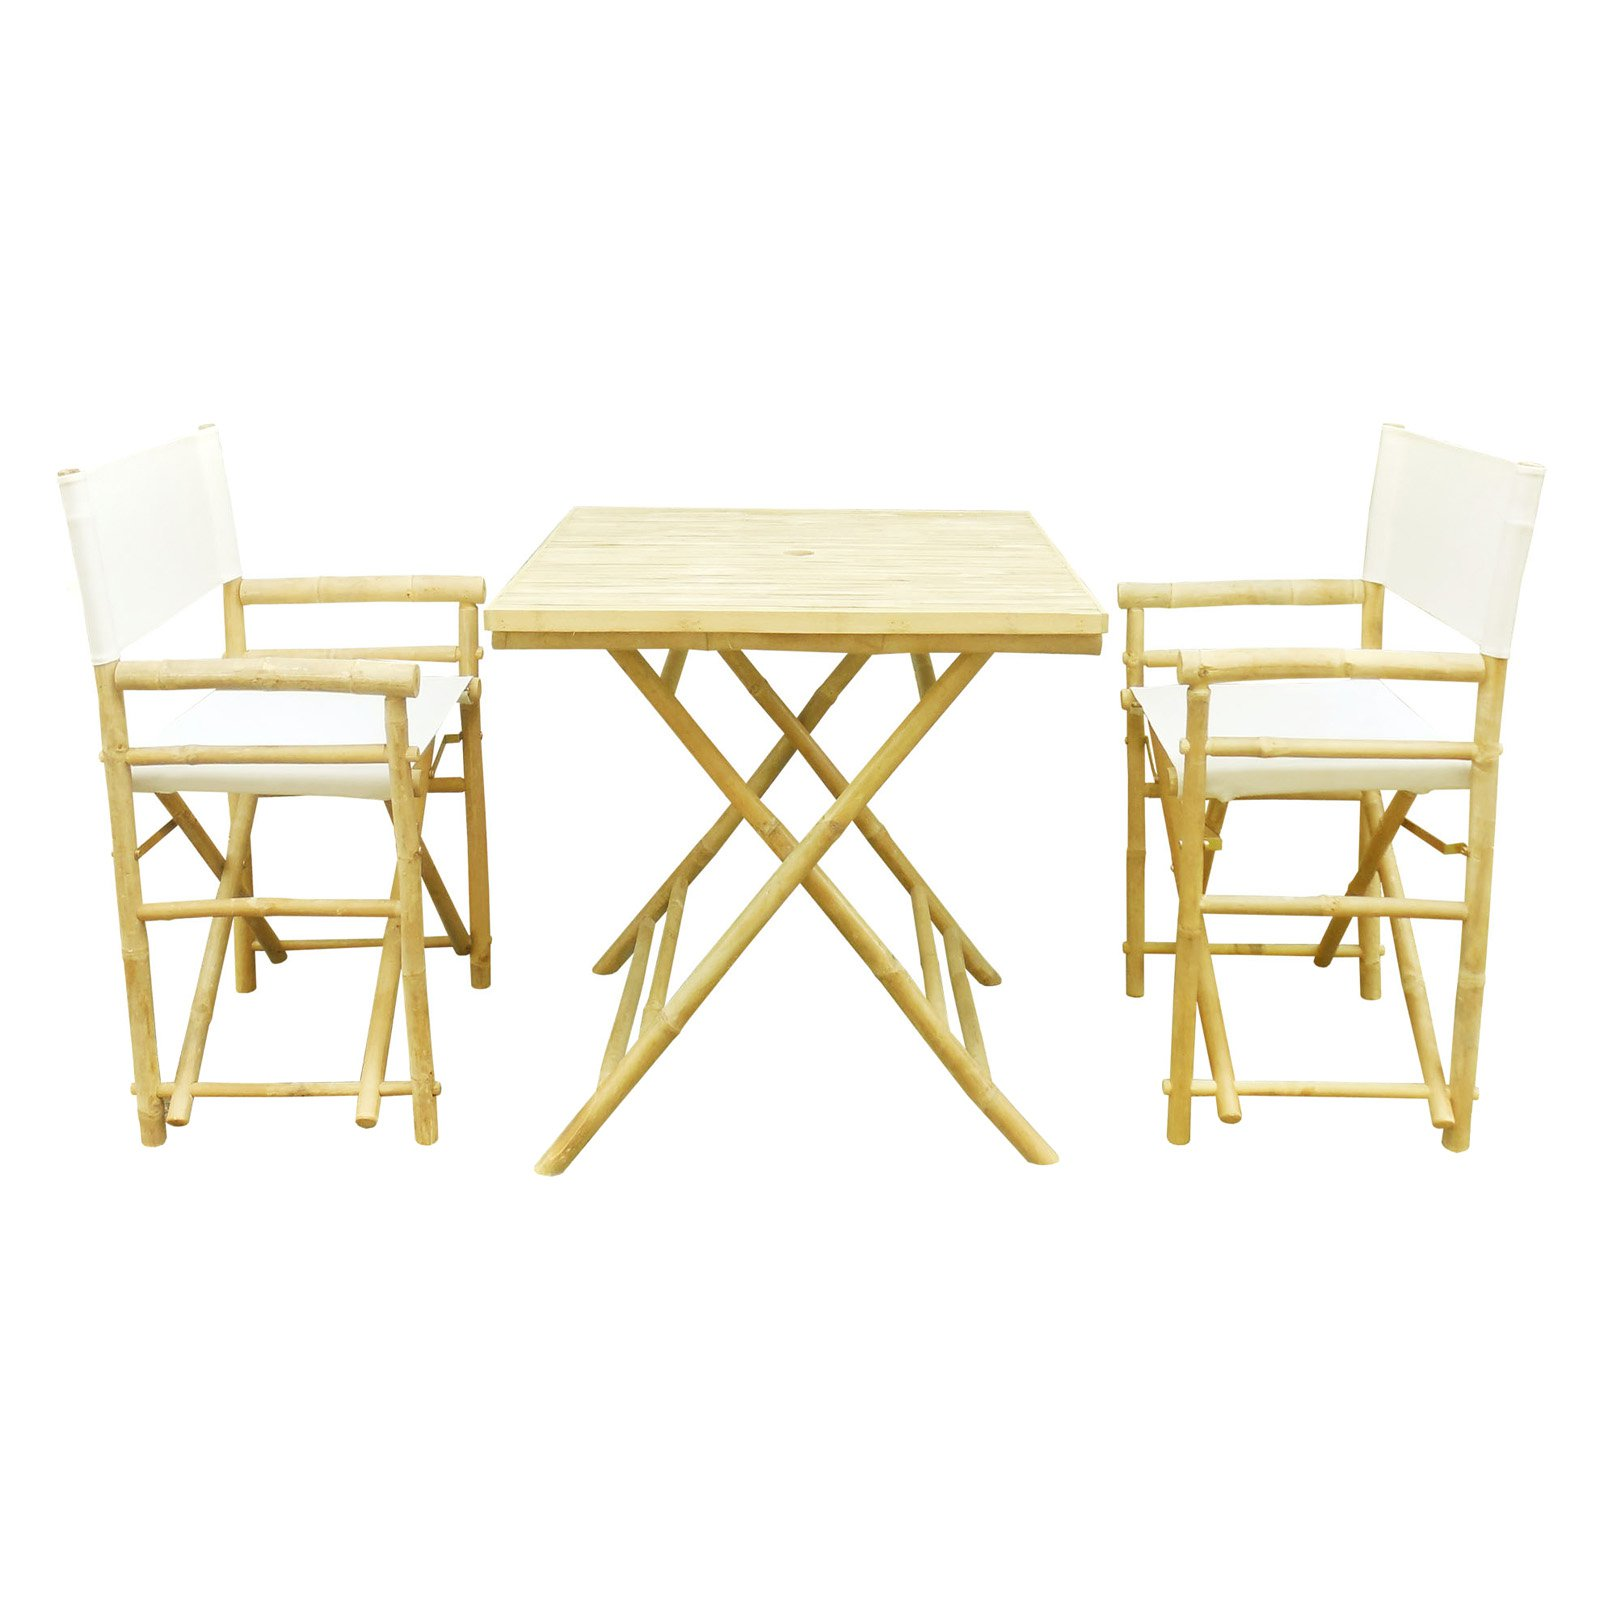 Zew Hand Crafted 3 Piece Square Folding Bamboo Patio Dining Set with Director Chairs